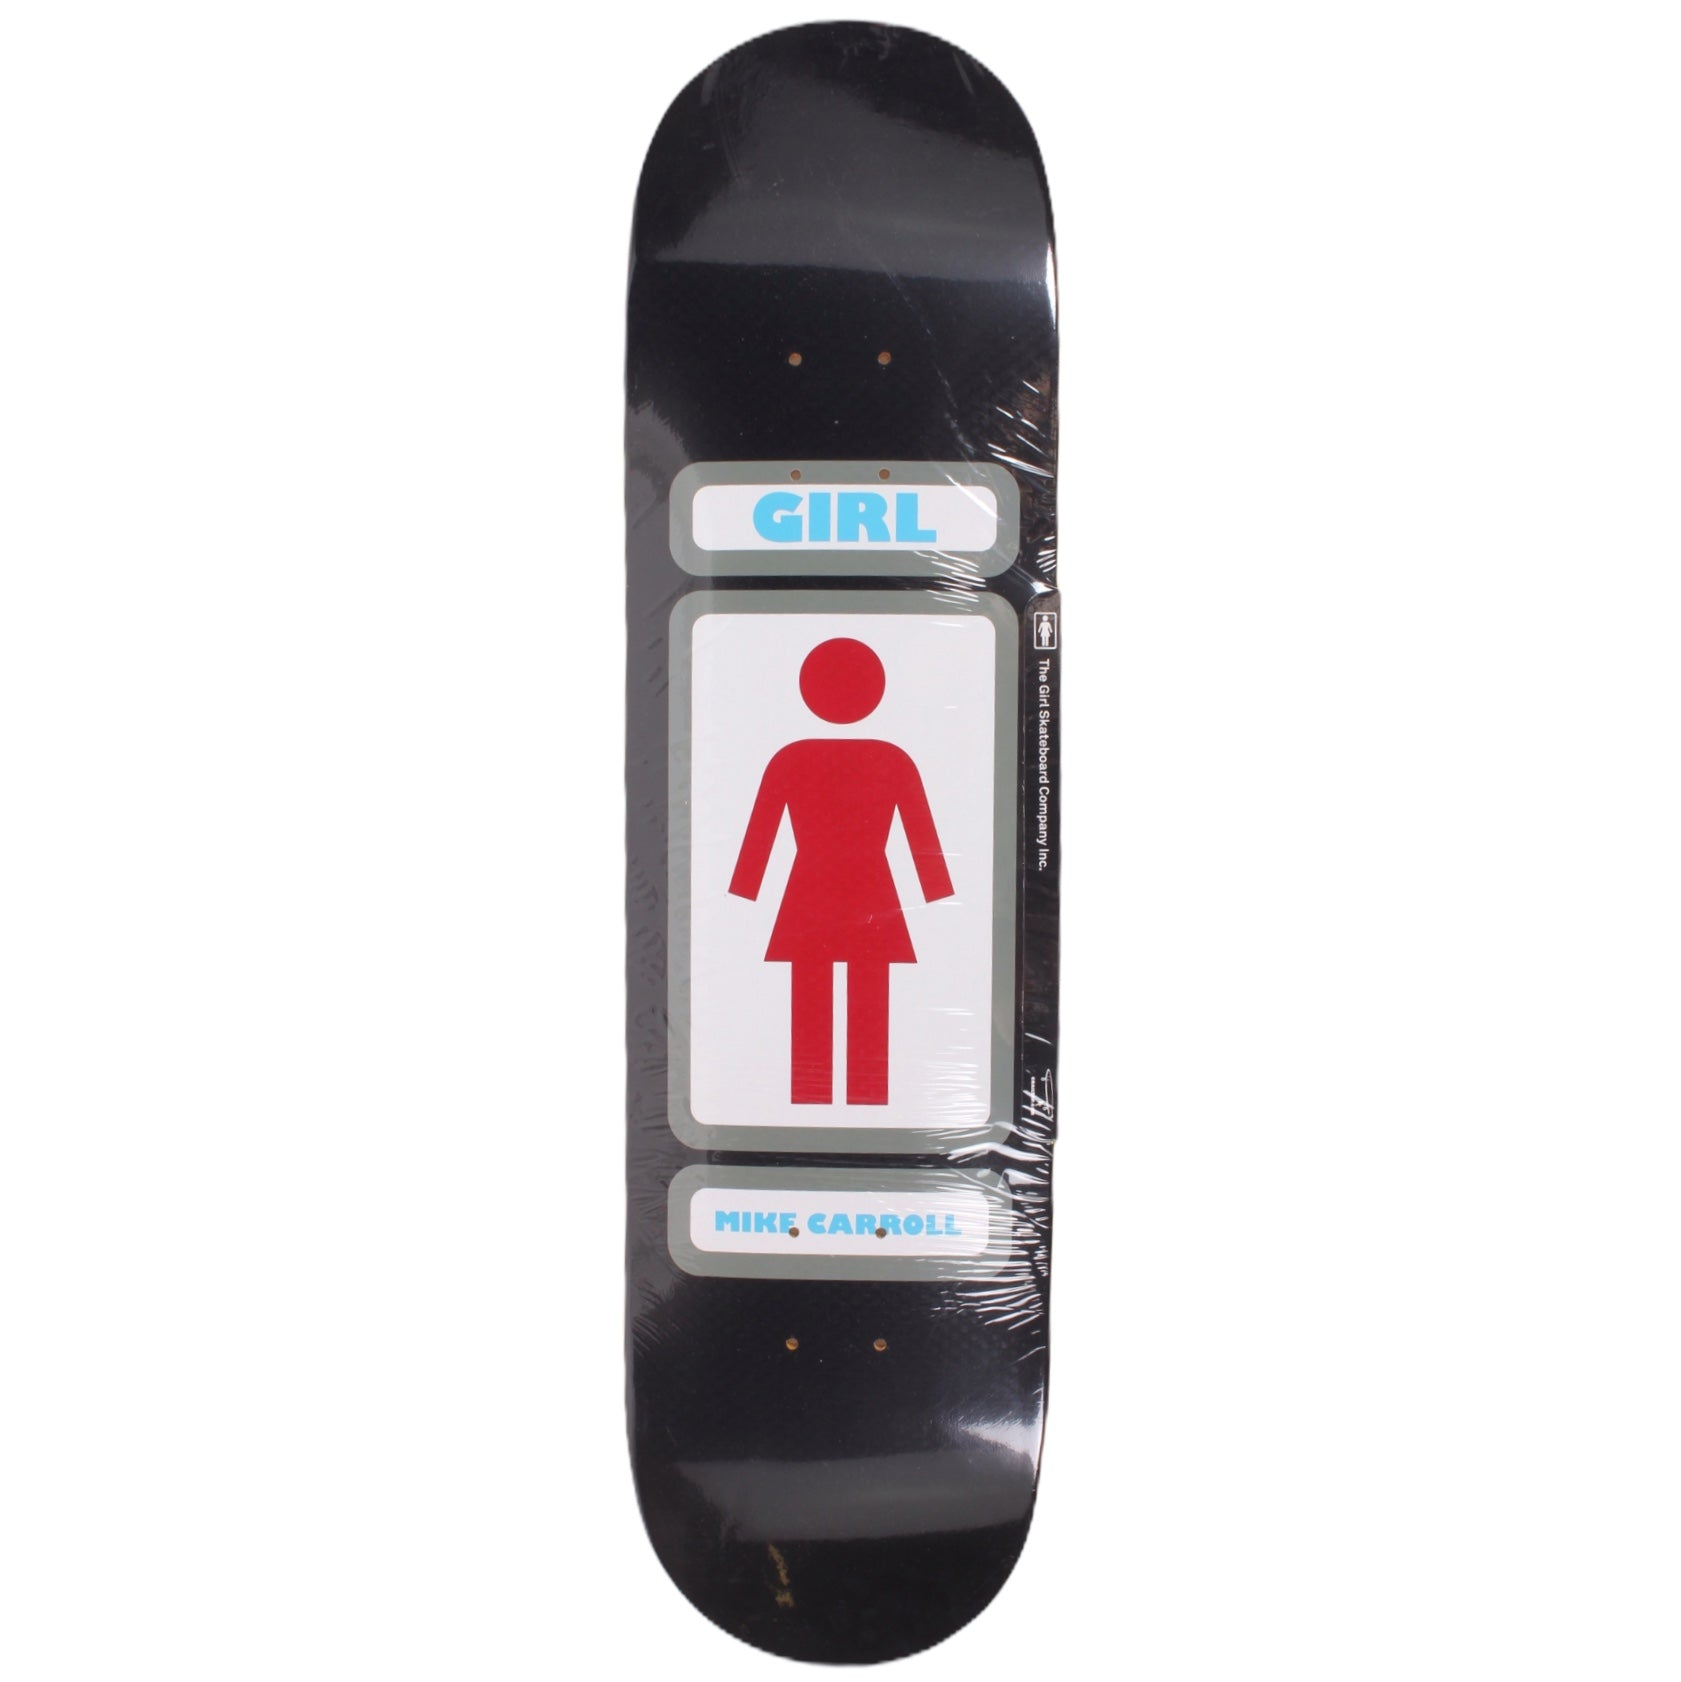 Overripe Girl Deck Carroll OG 2014